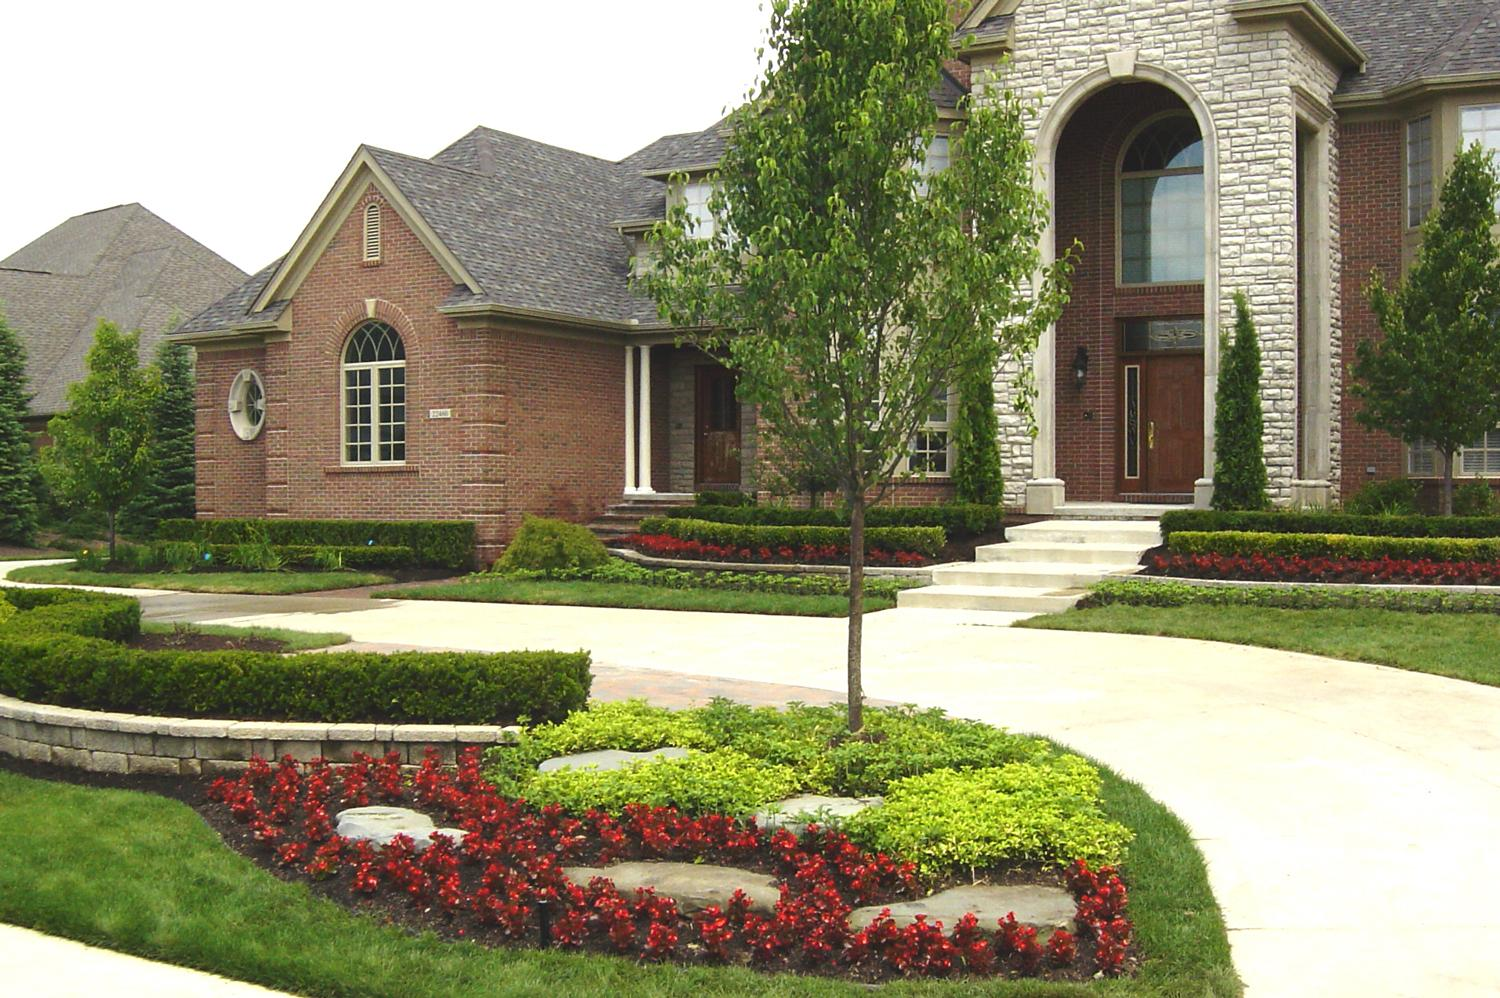 Landscaping Ideas For Front Yard Images : Simple landscape ideas for landscaping front yard